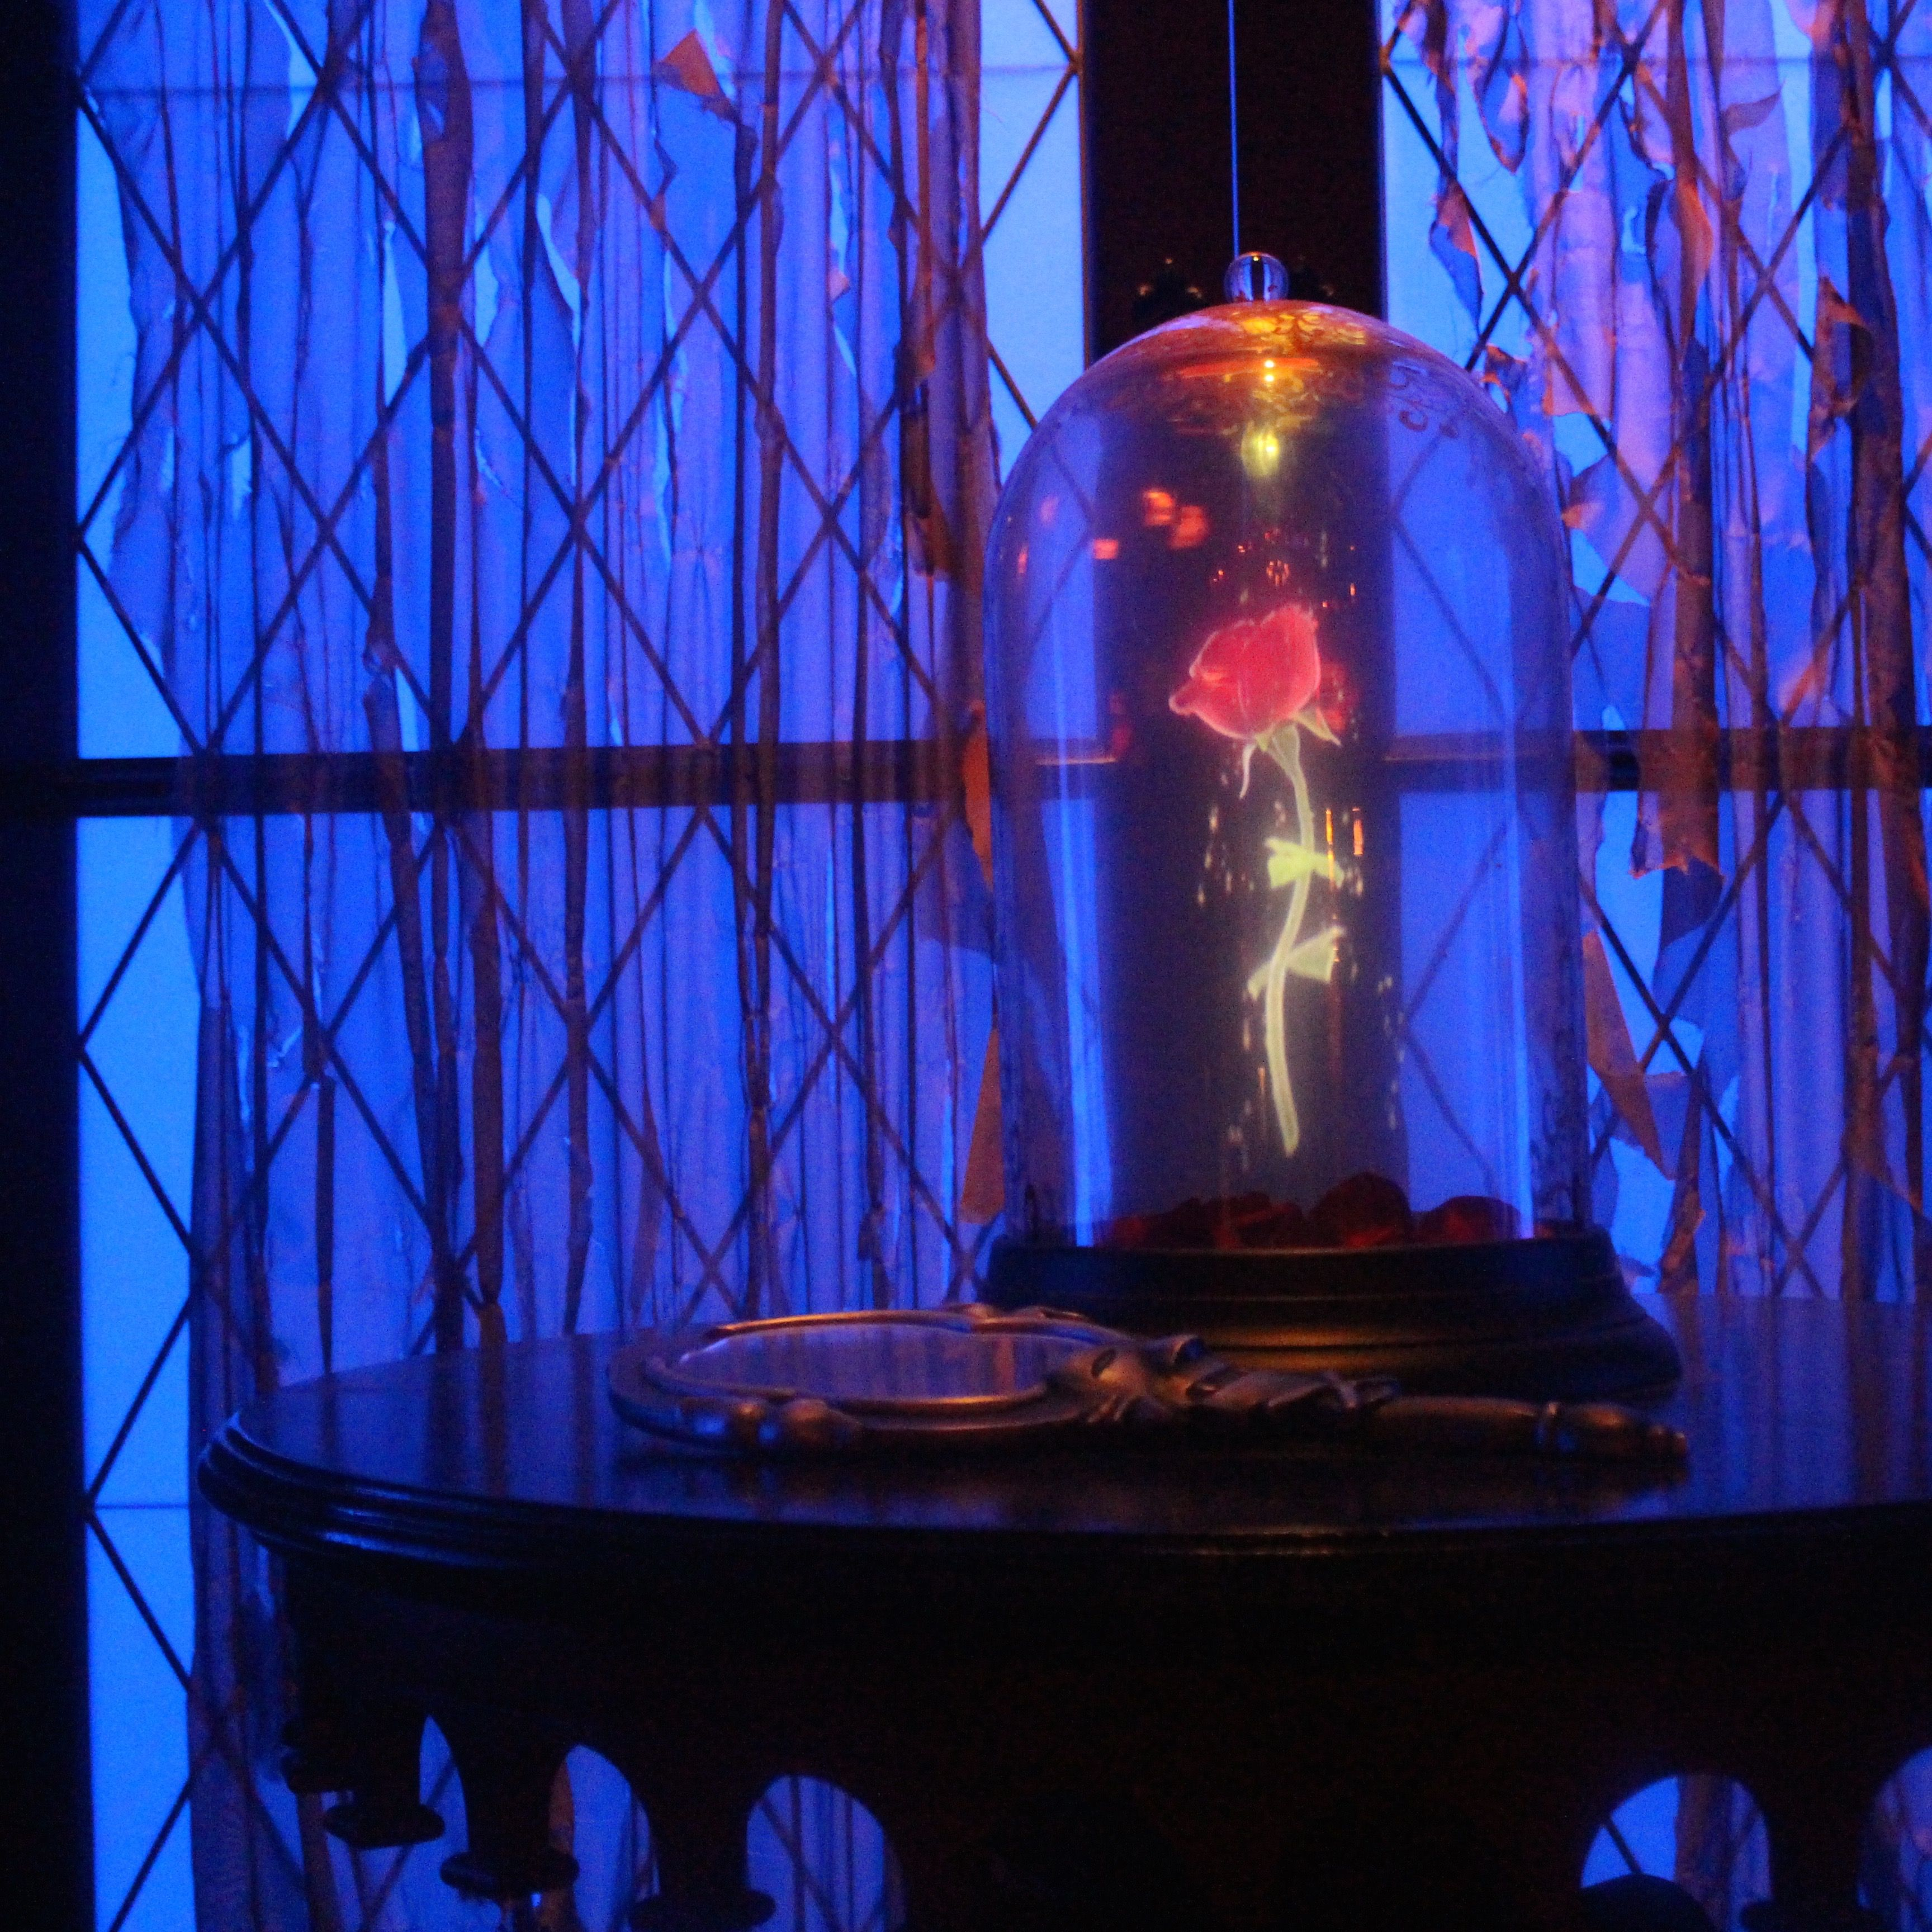 Visit the West Wing of the 'Be Out Guest' restaurant and you'll see the famous rose